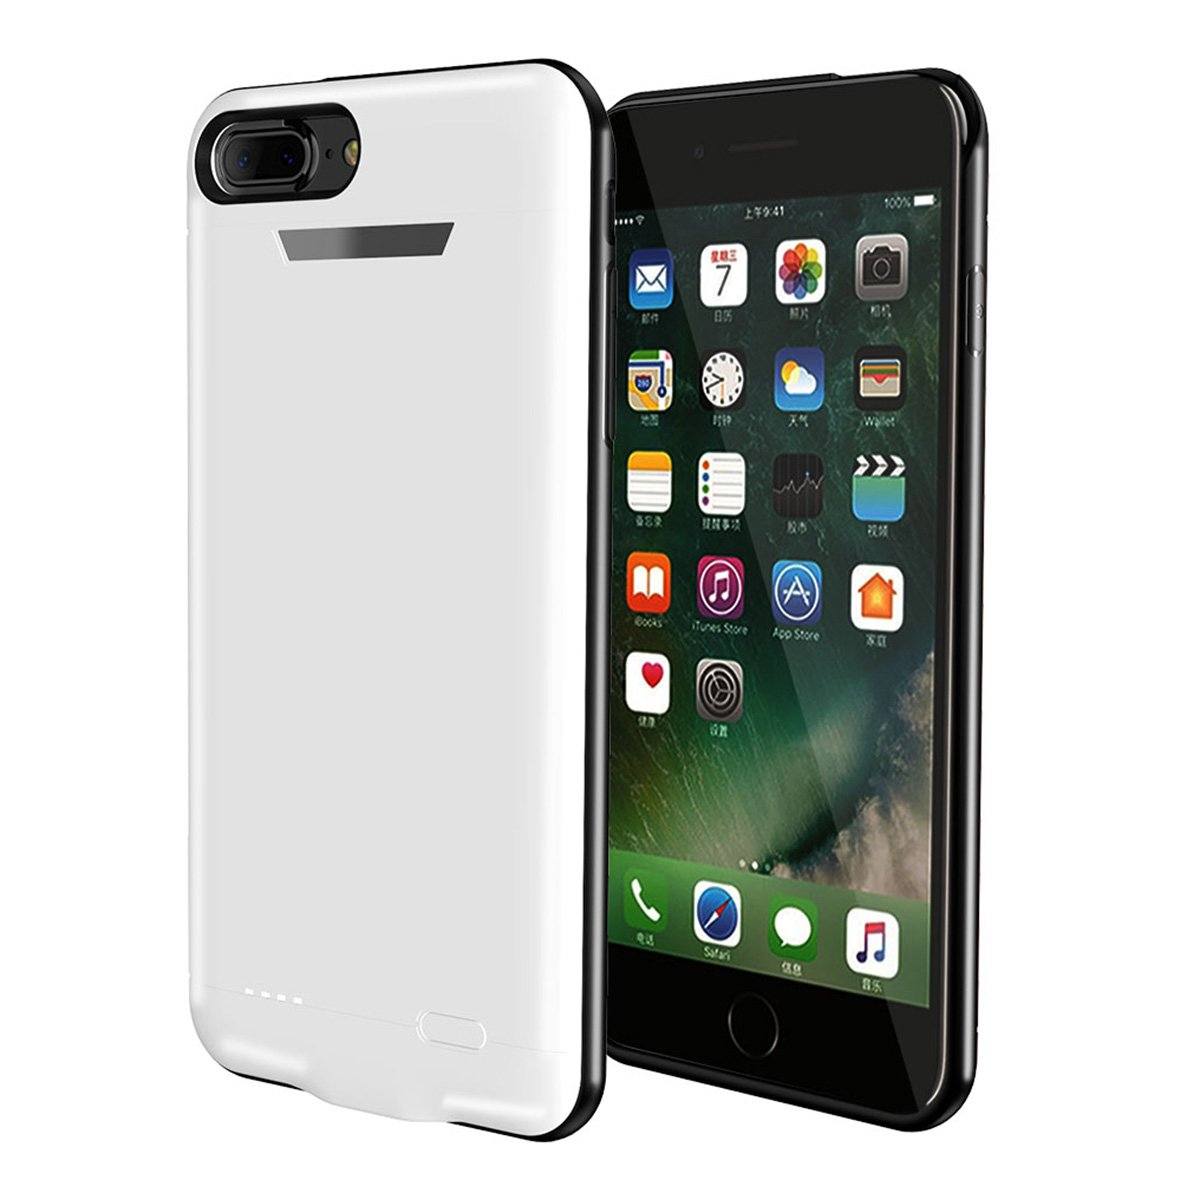 iPhone 7 iPhone 8 Battery Case- Cover Protective Portable Rechargeable Charging case Compatible with iPhone 7 iPhone 8 Bank Power Pack -White